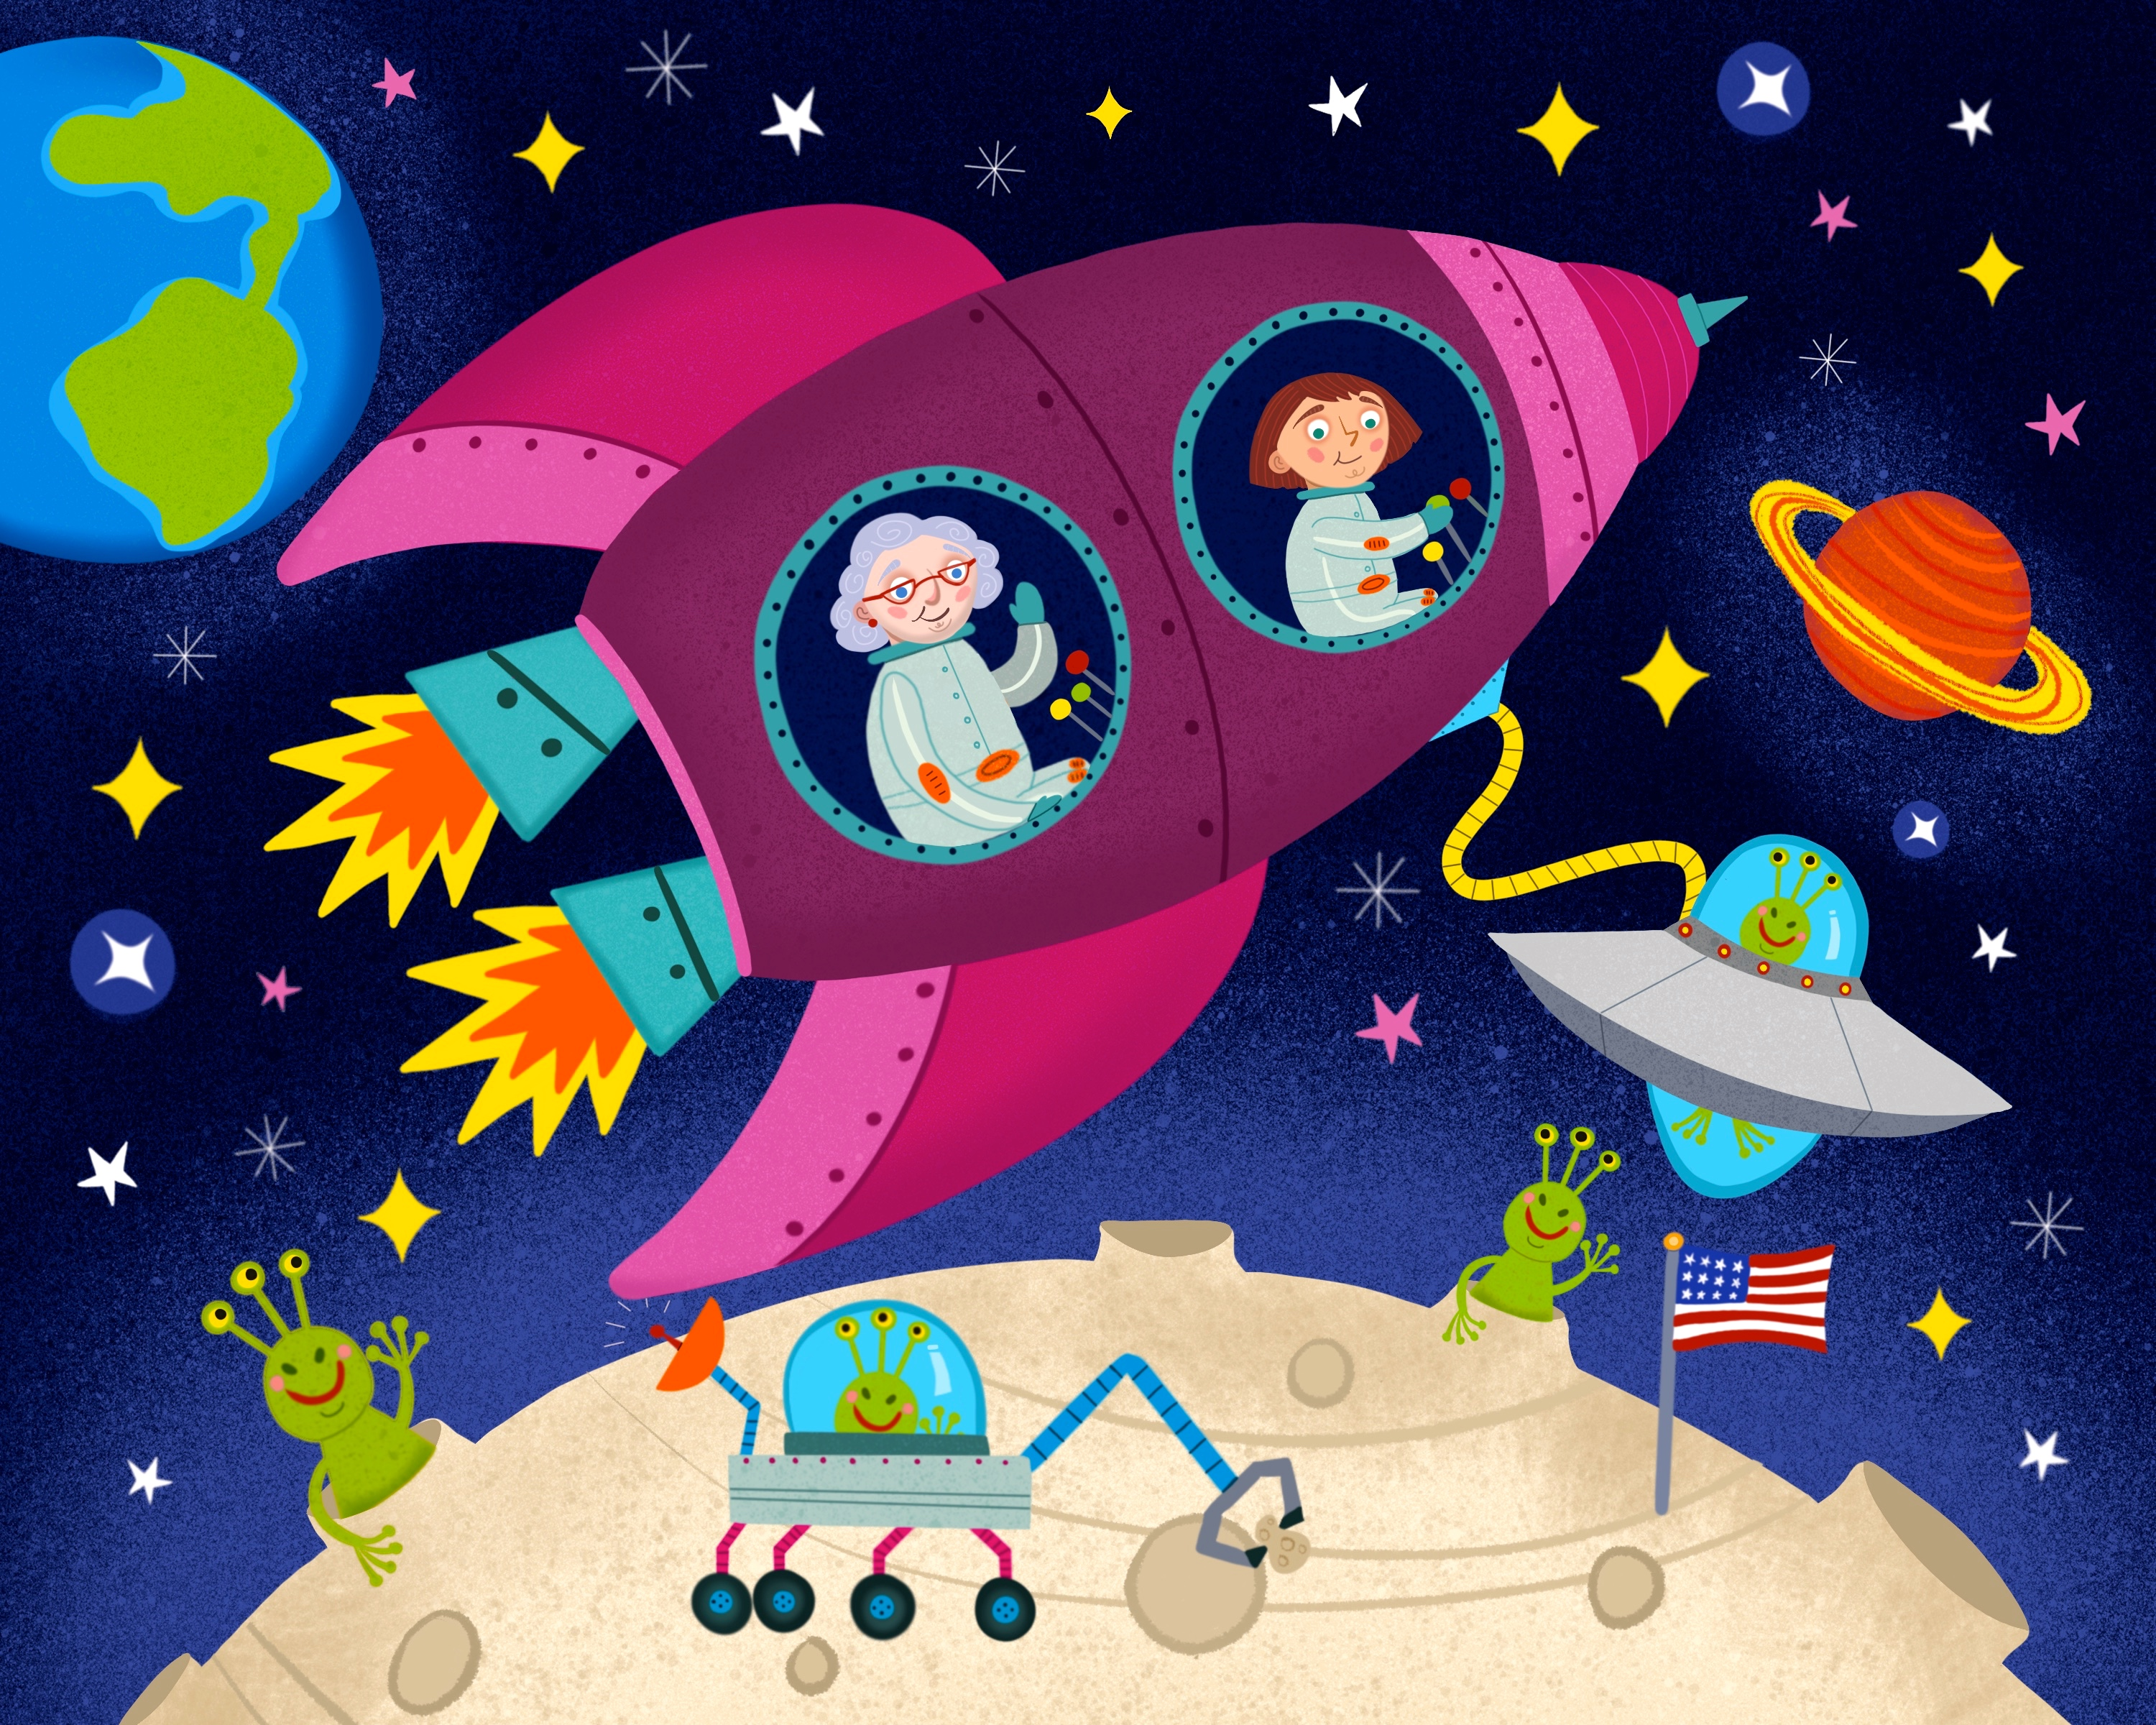 Grandma and Me: Space Adventure